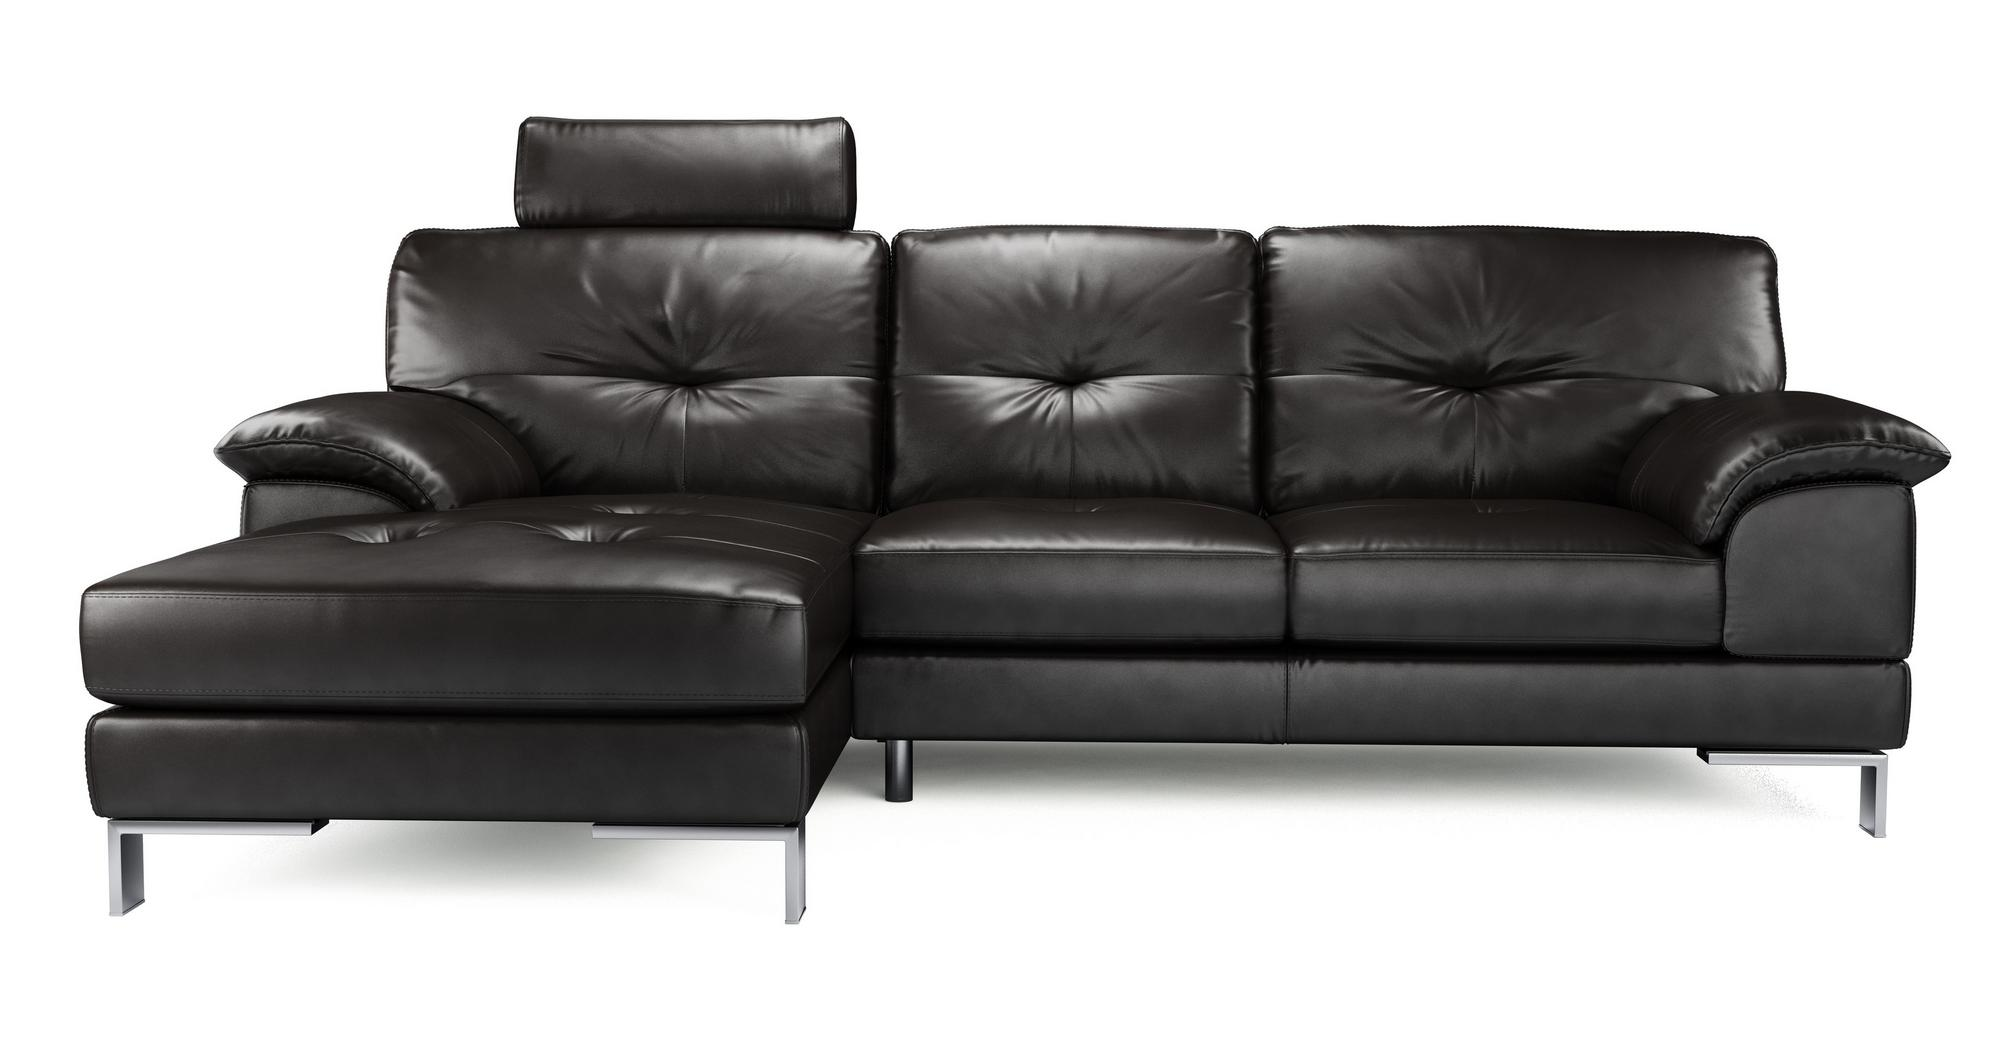 Dfs event black leather left hand facing chaise end sofa for Chaise end sofa uk